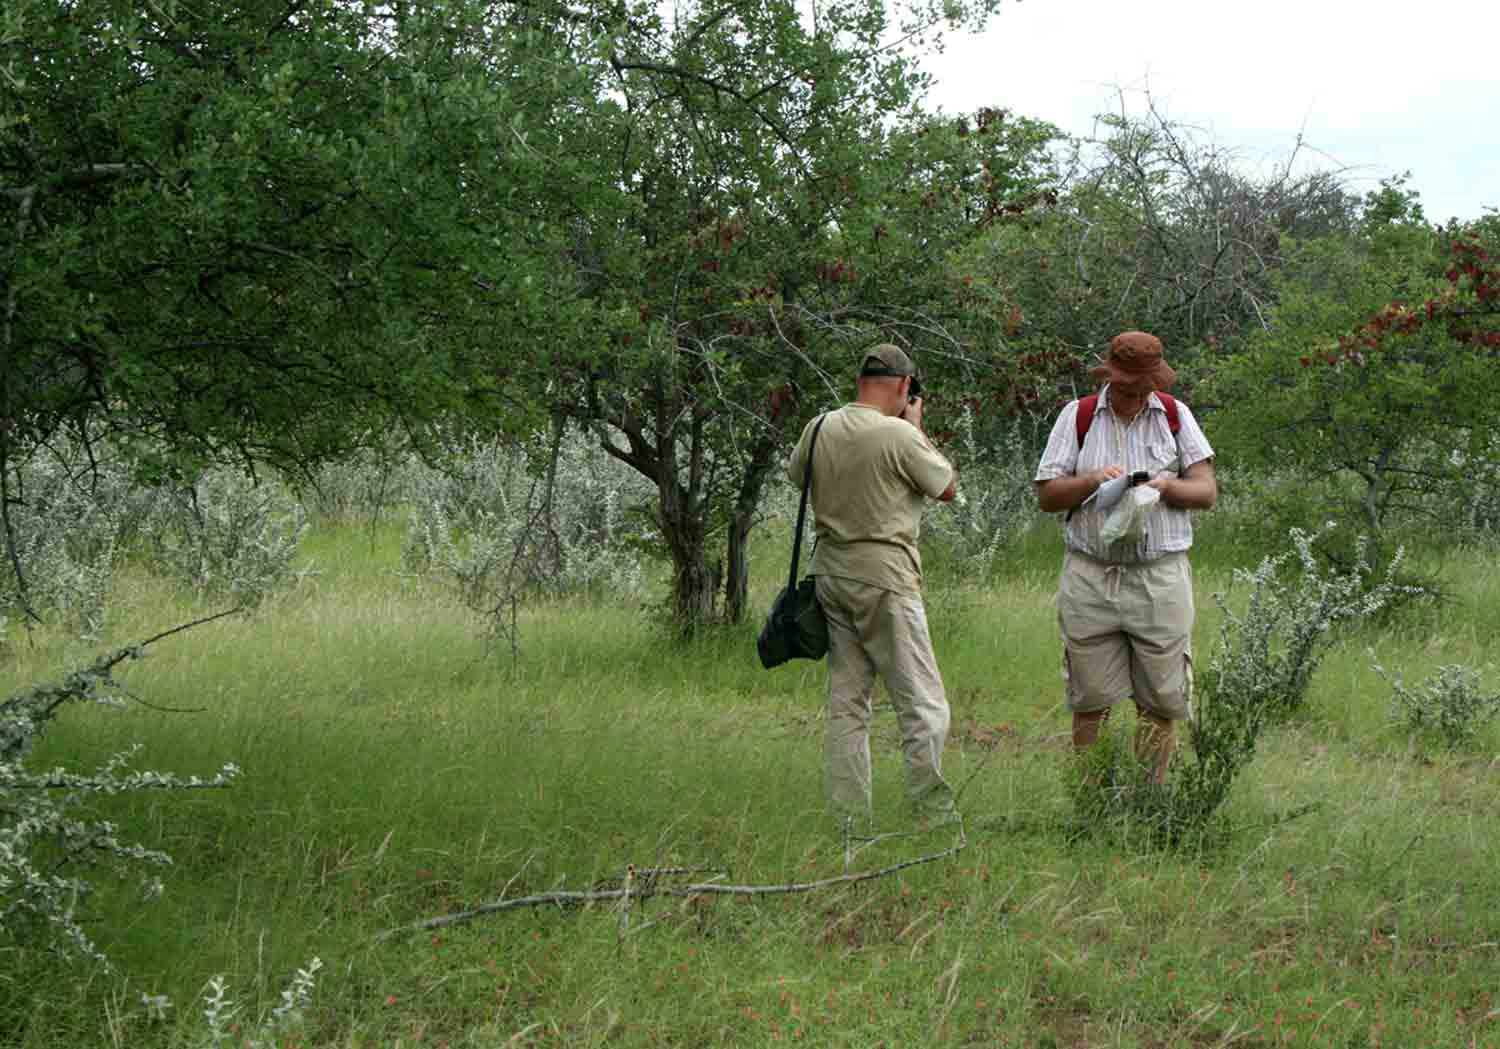 Bart (left) and Mark, in the field.